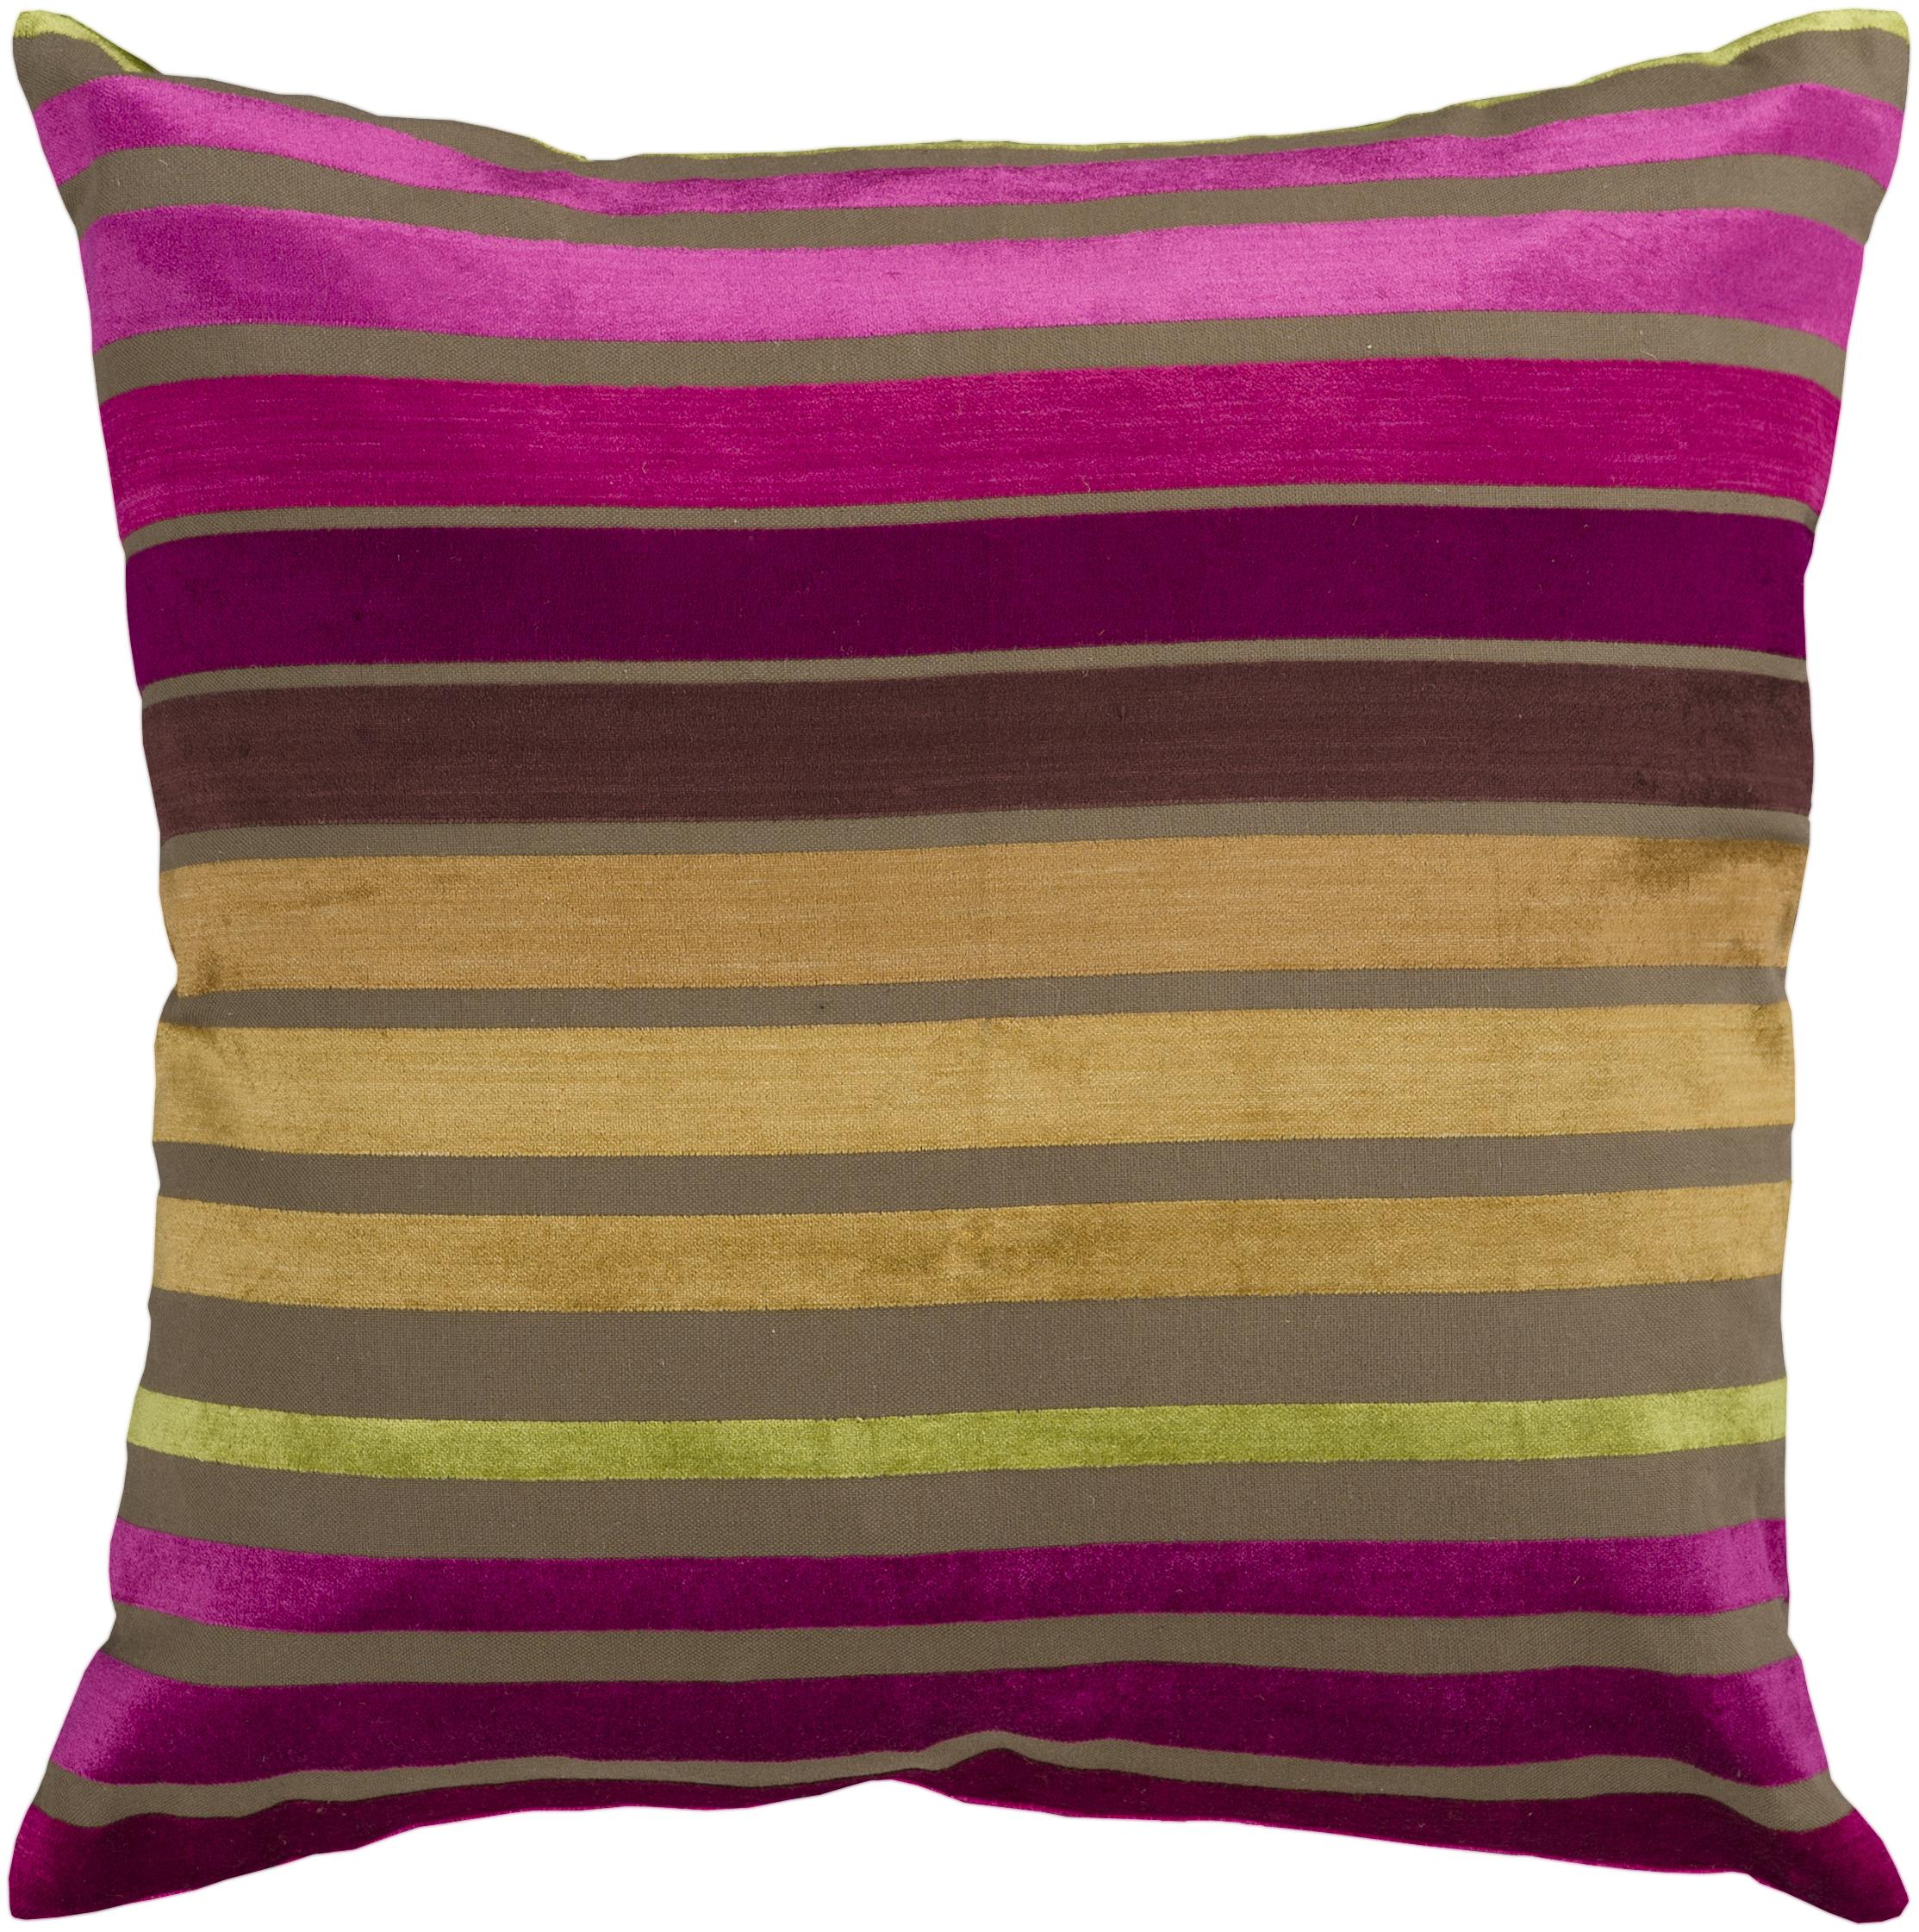 "Surya Rugs Pillows 22"" x 22"" Pillow - Item Number: JS020-2222P"